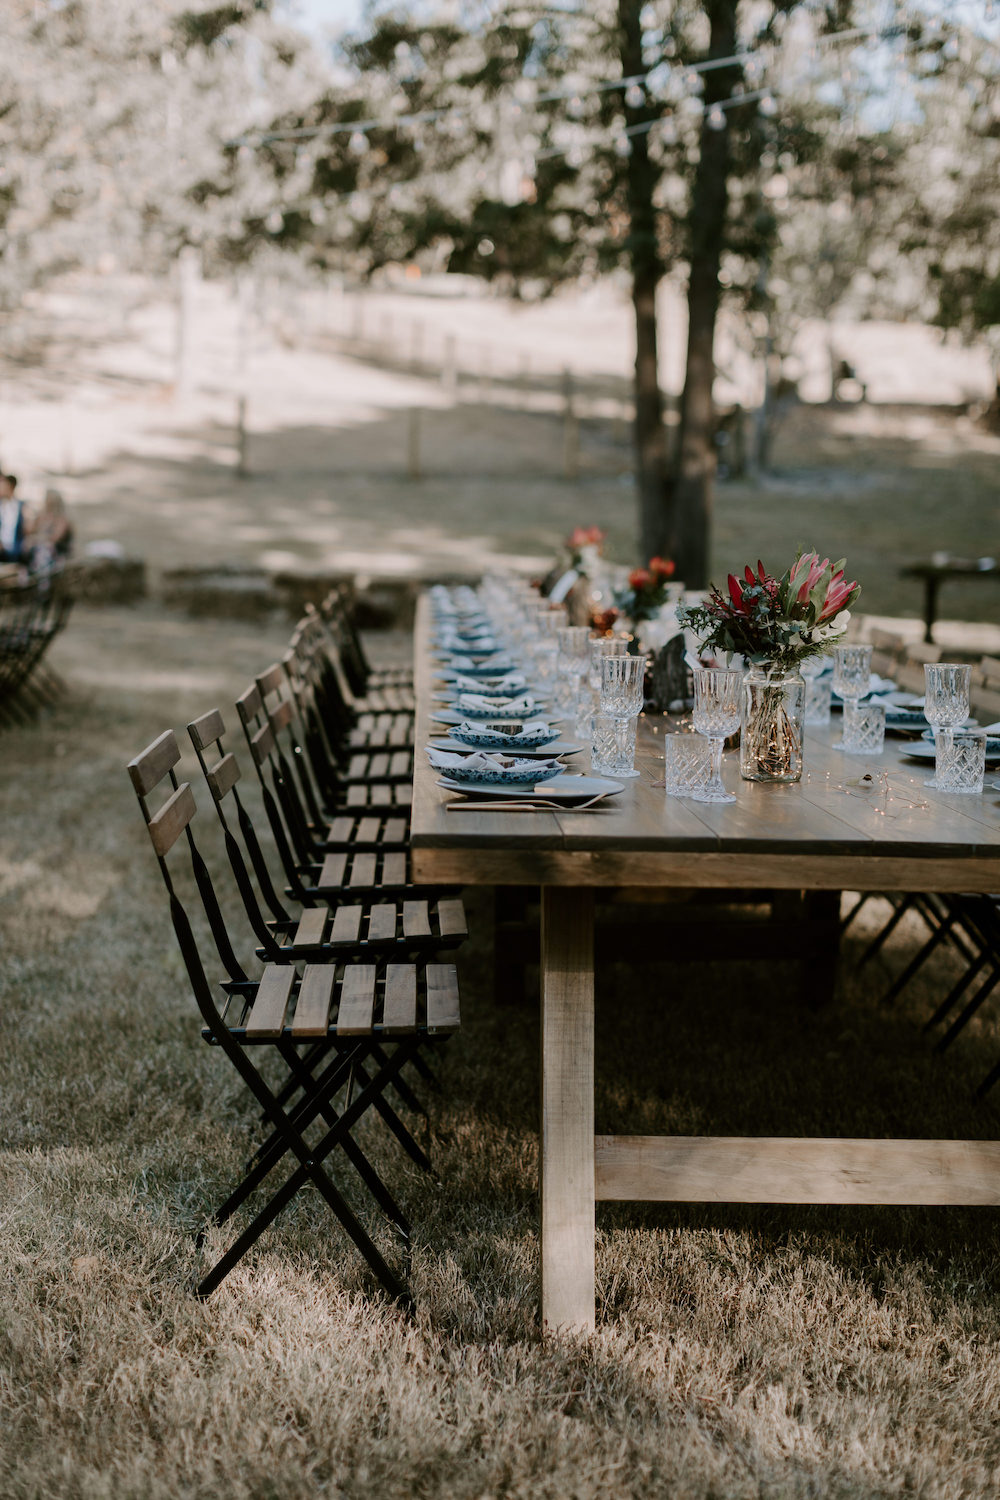 Real wedding michell richard country bohemian diy wedding styling at brisbane hampton